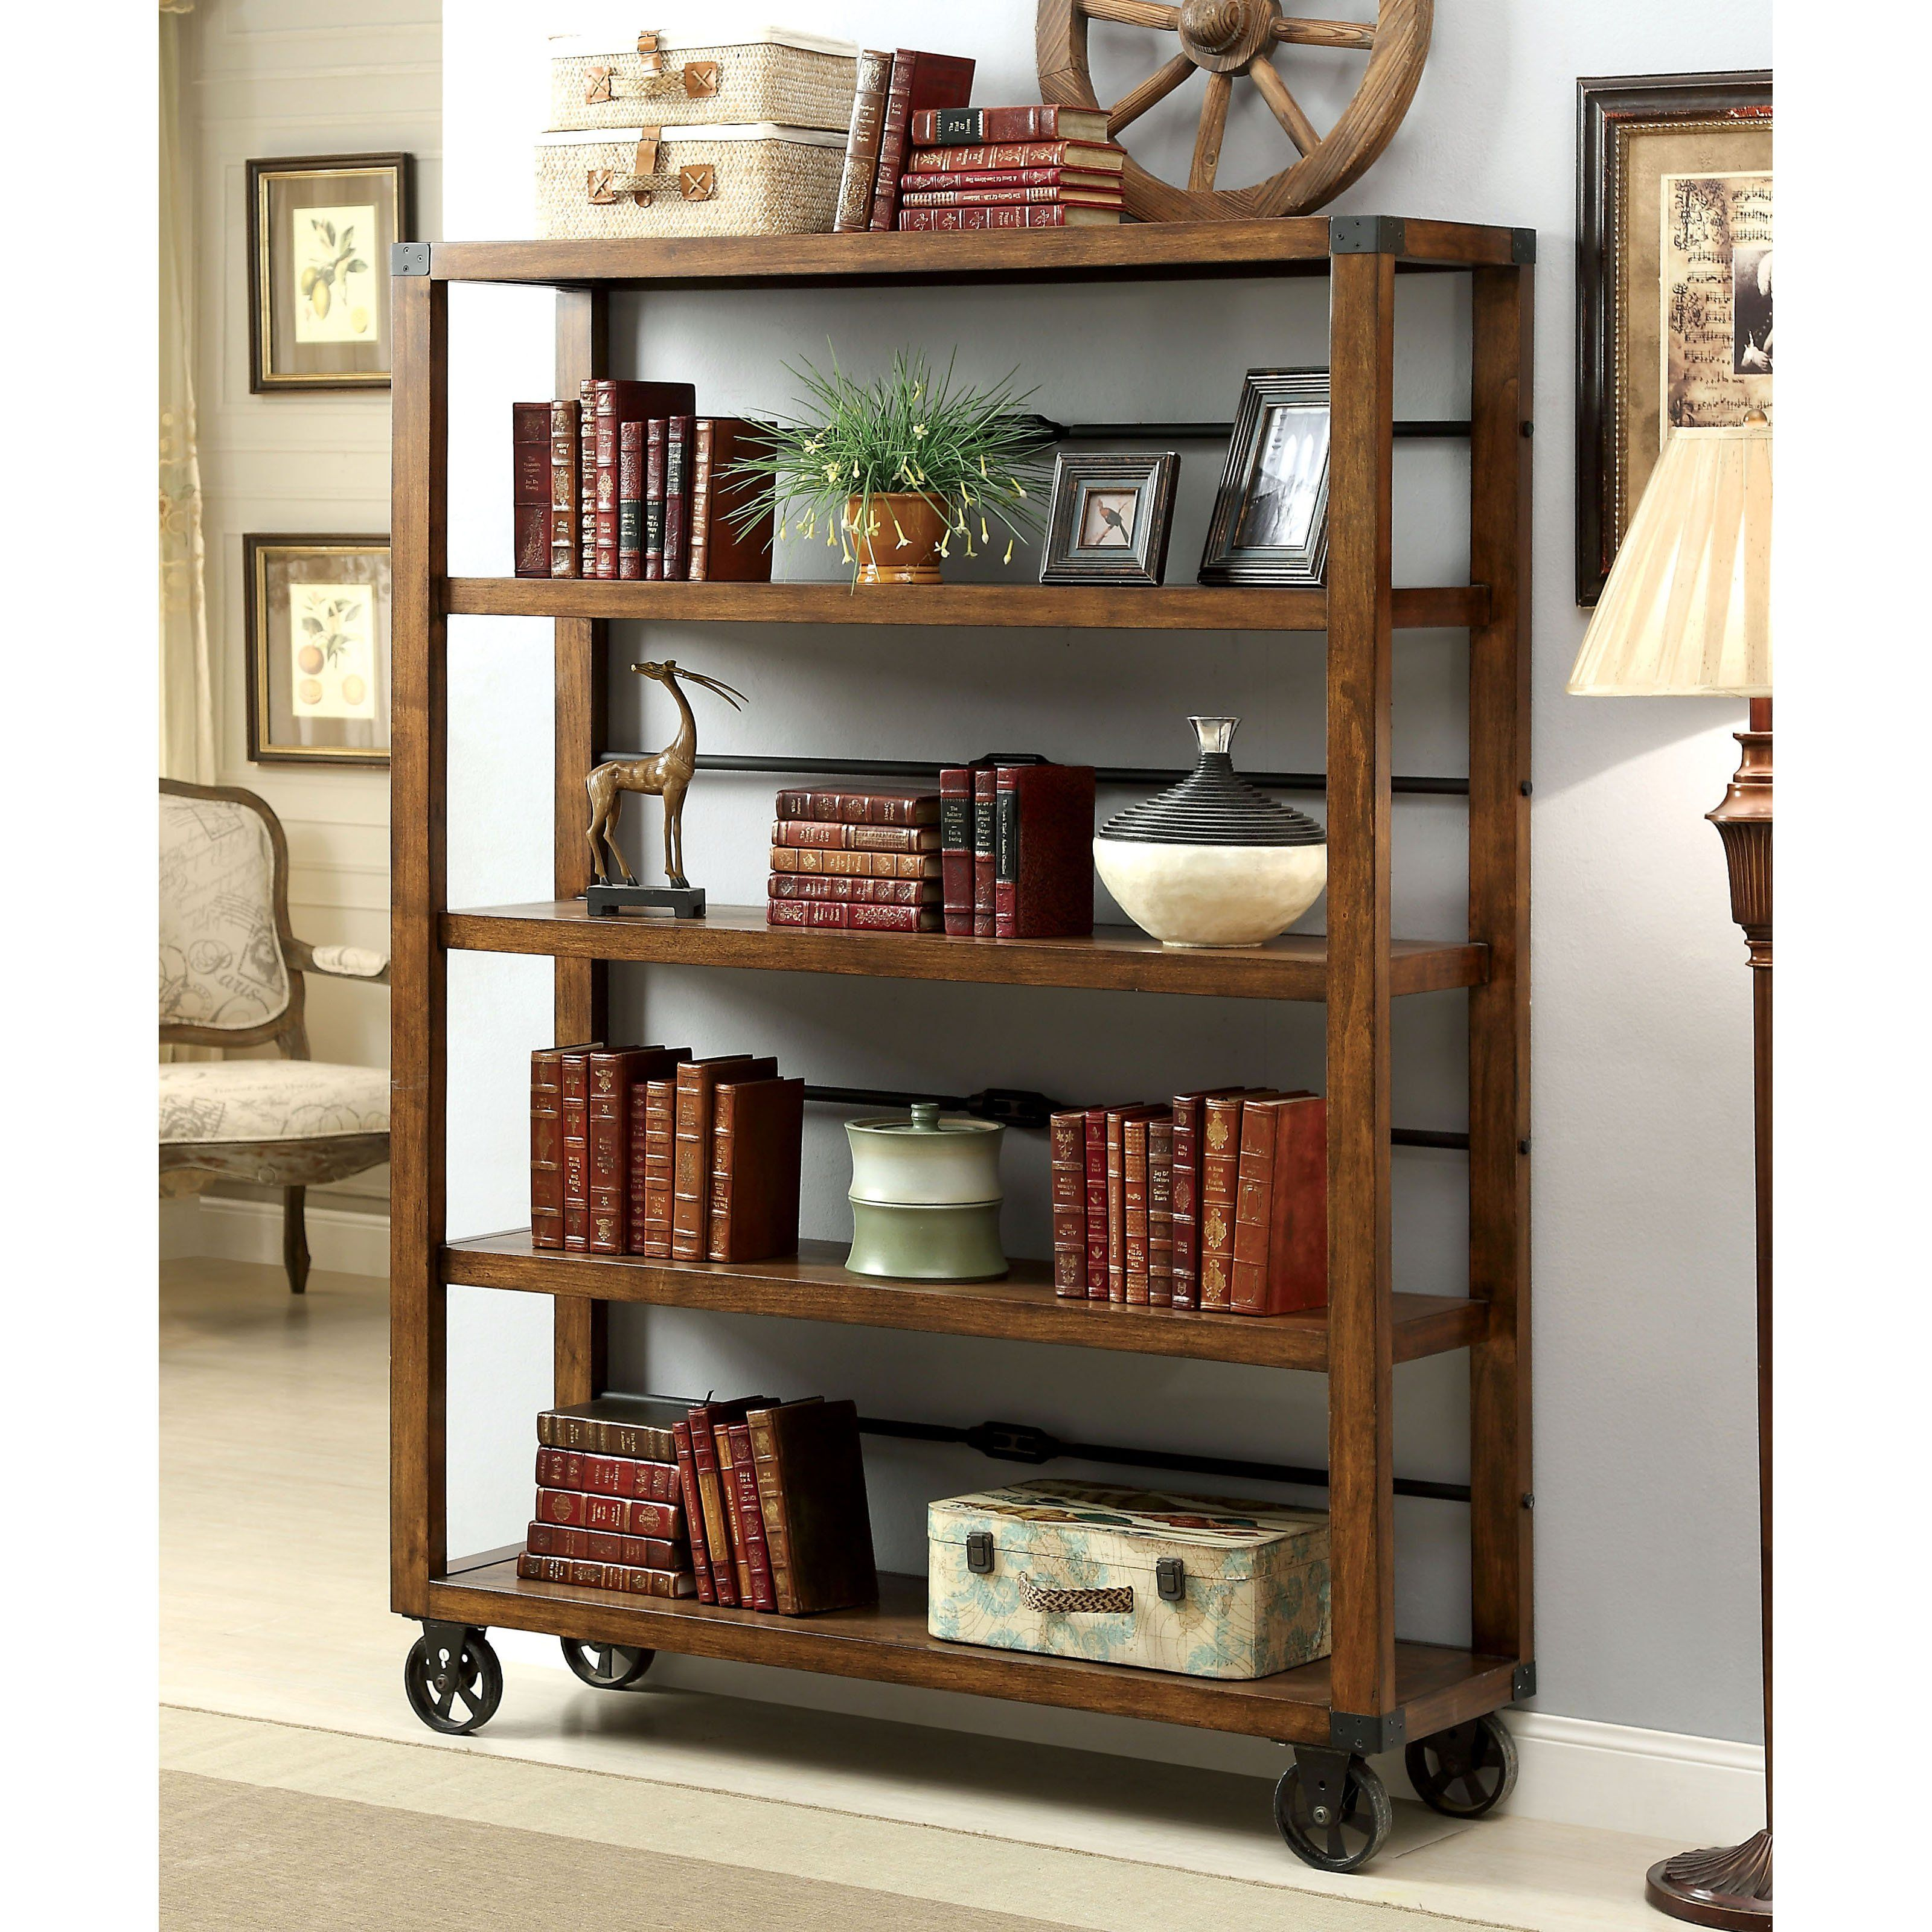 front mudroom bench toque project mitt horseshoe glove boot locker hanger rustic and makeover with hangers western storage bookshelf closet pin entryway